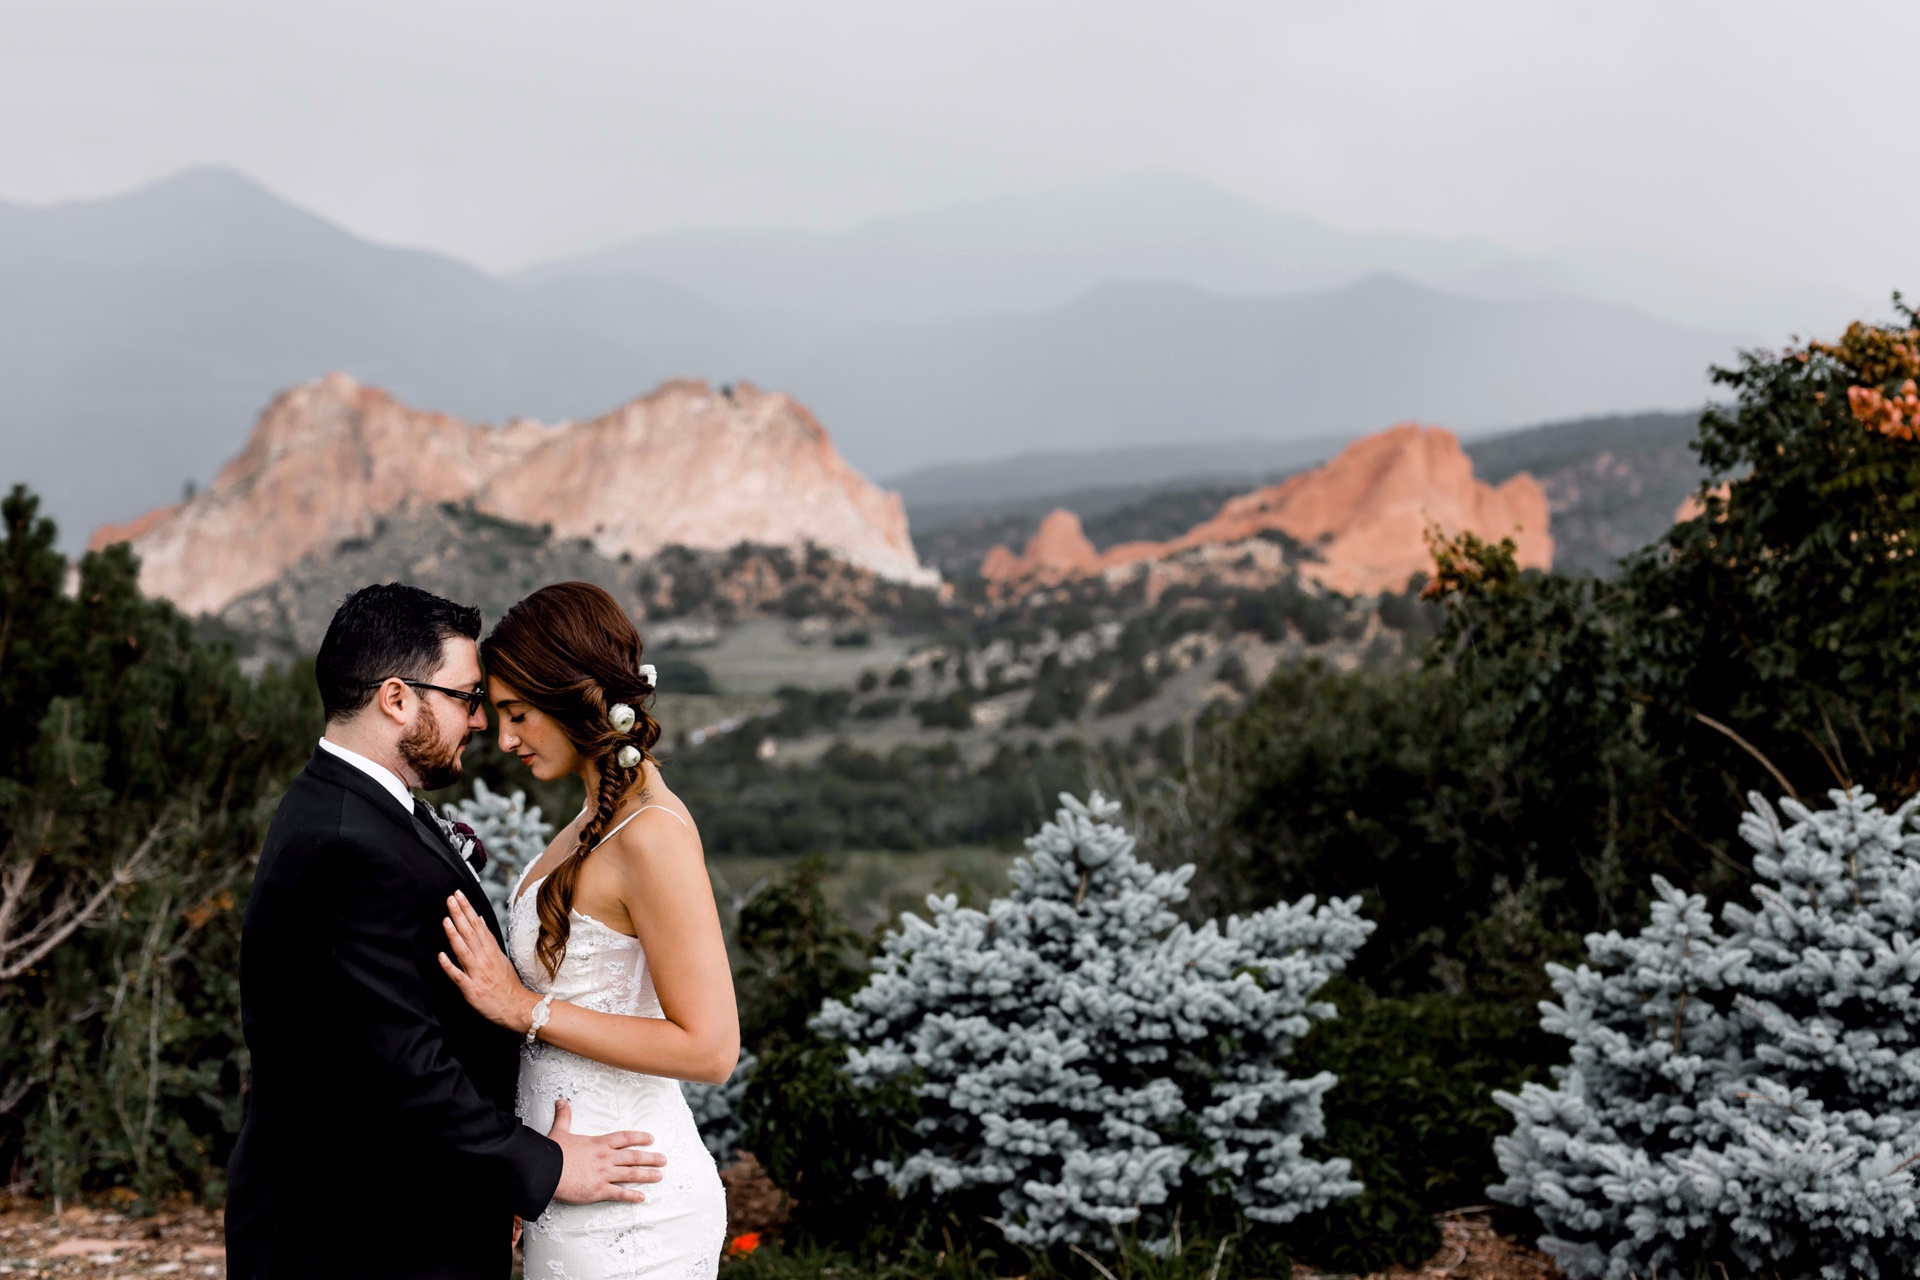 Stephen & Malak - Garden of the Gods